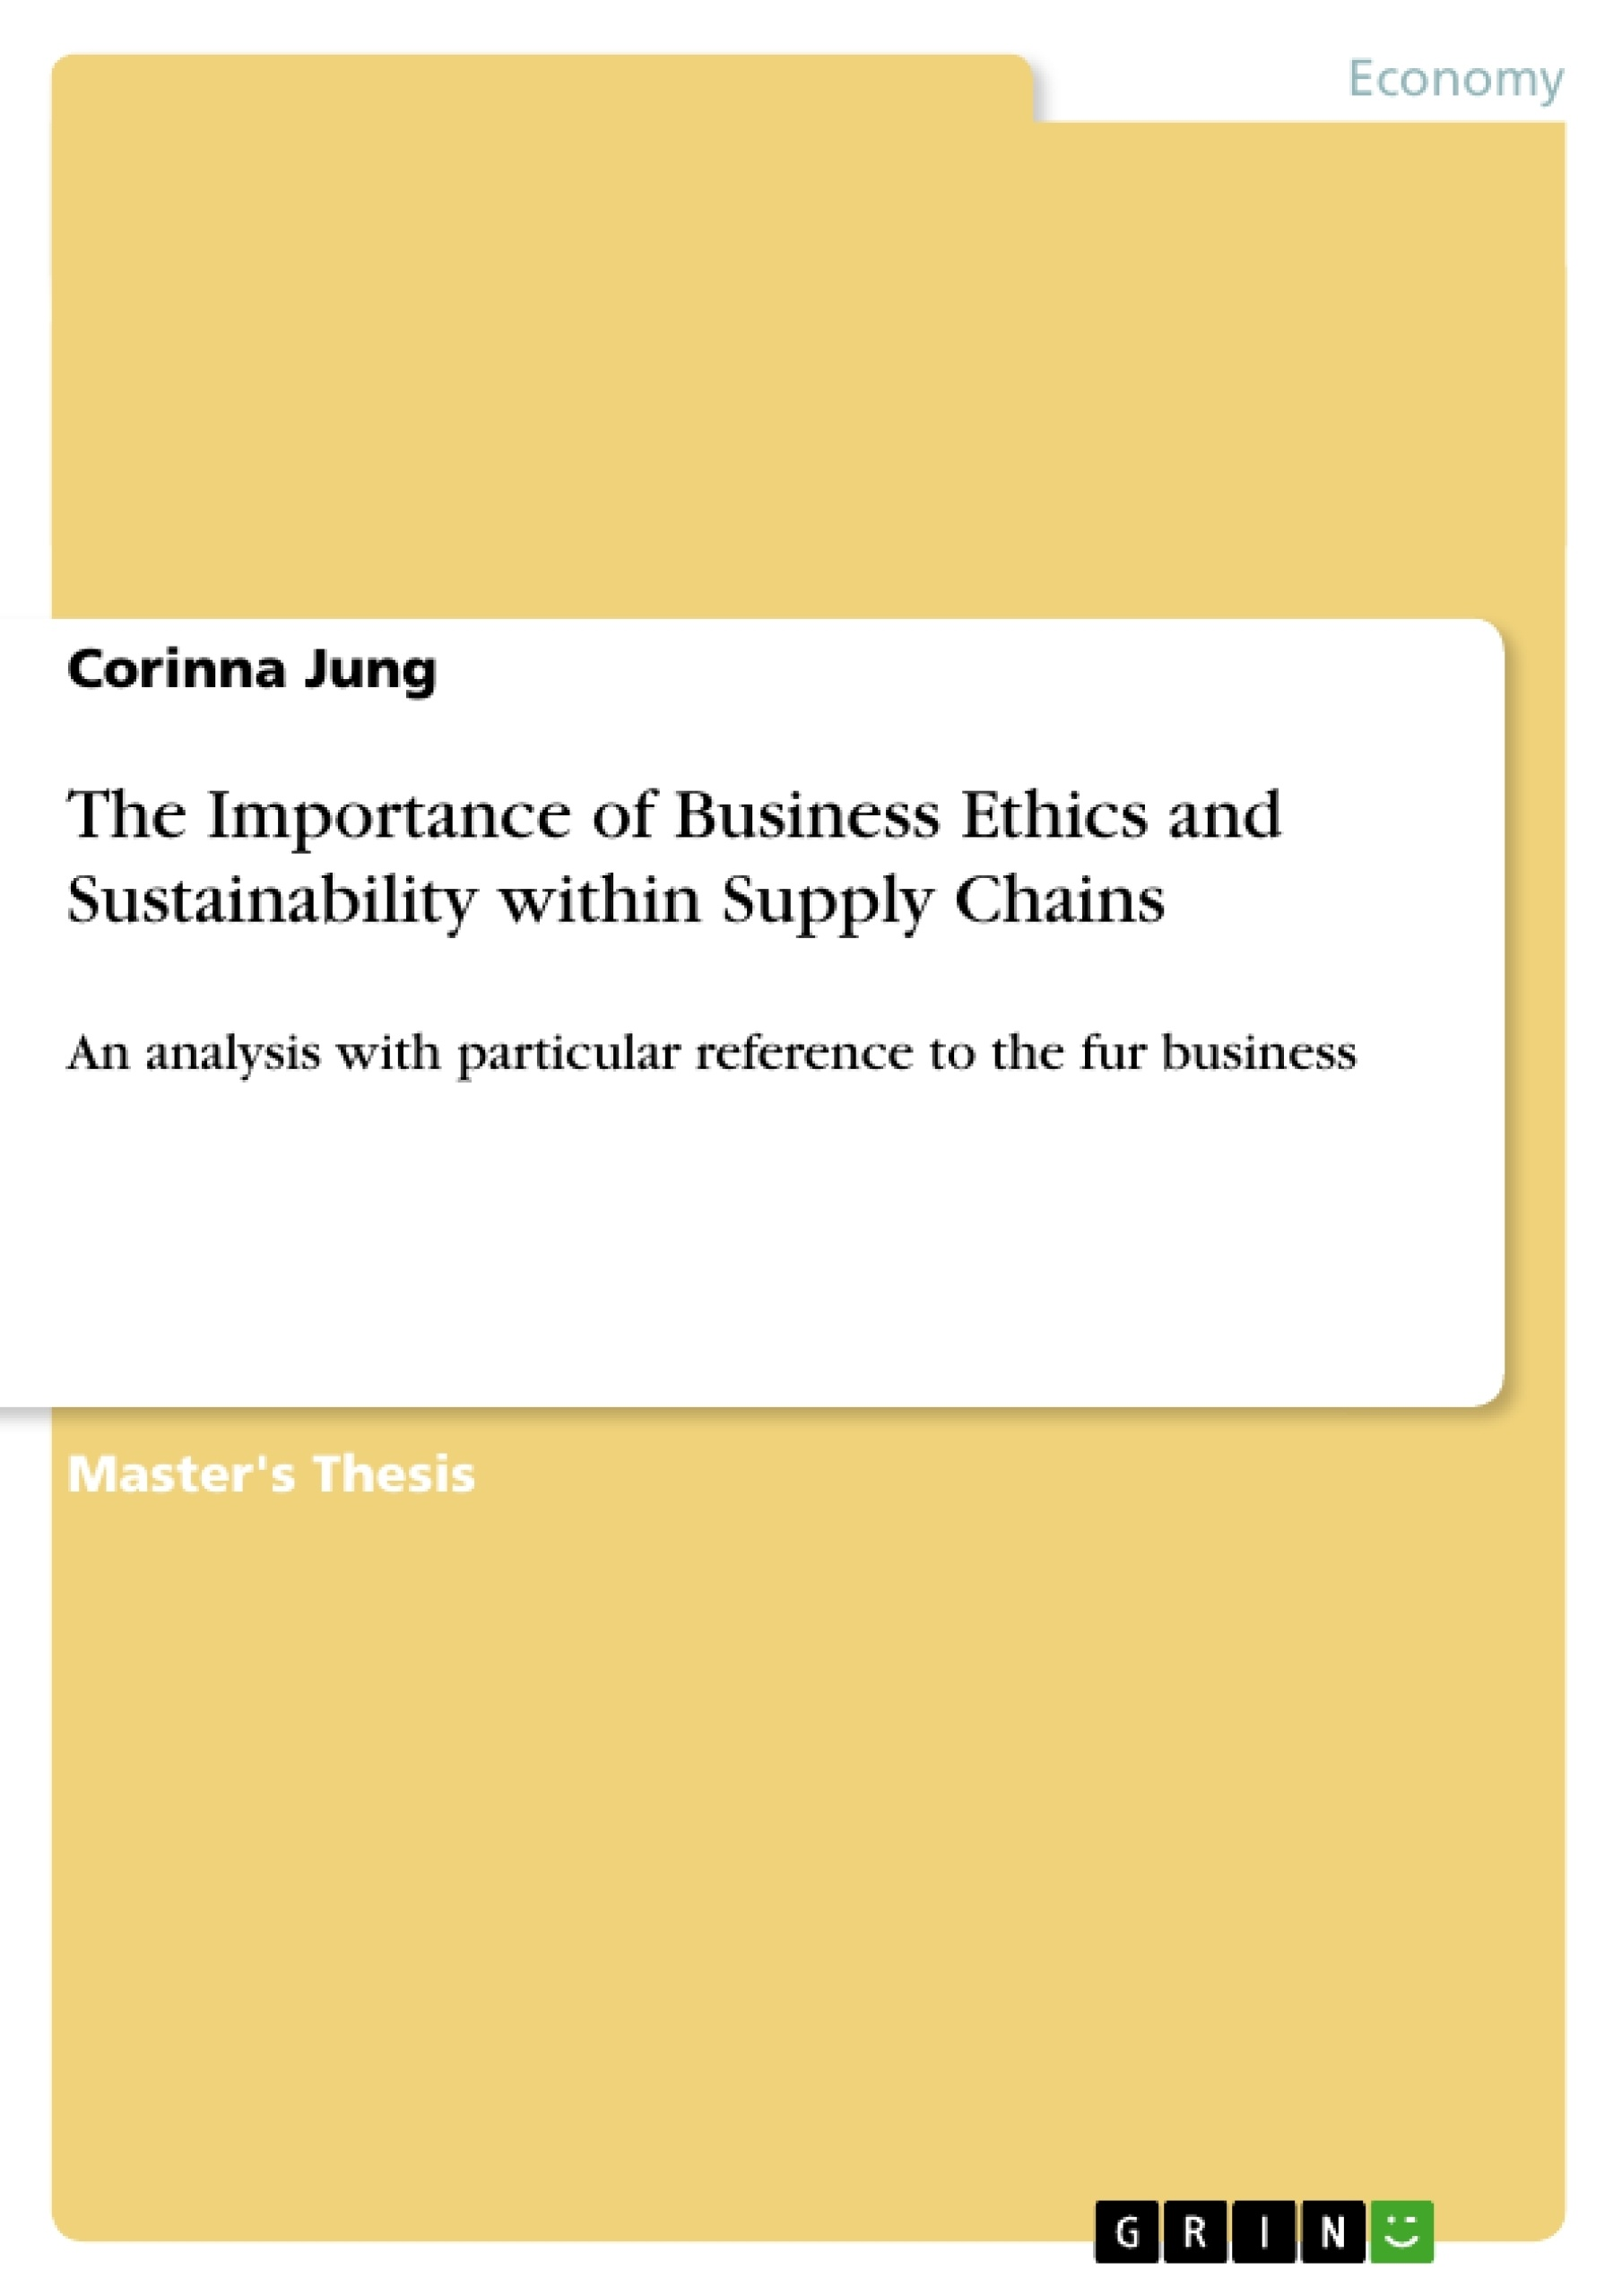 importance of integration within a supply chain business essay Find answers to some common integrating supply chain management (scm) and   the power of business intelligence (bi) can greatly enhance the value of supply  chain  if you are working with a solution that includes built-in scm and bi  visibility,  a photographic essay on a key part of massachusetts economic  history.